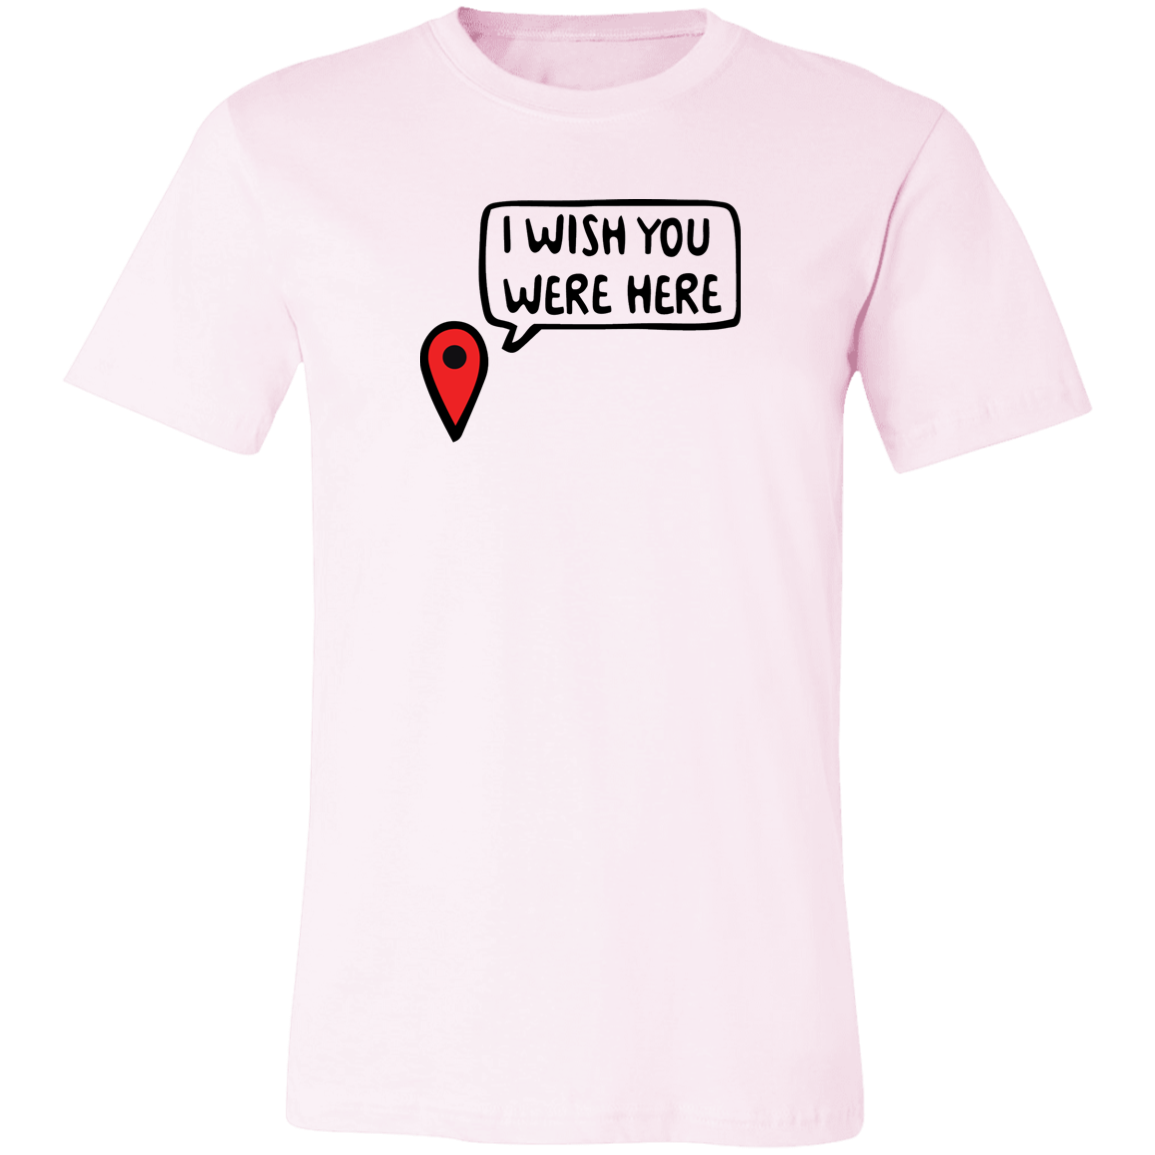 I Wish You Were Here Unisex Jersey Short-Sleeve T-Shirt